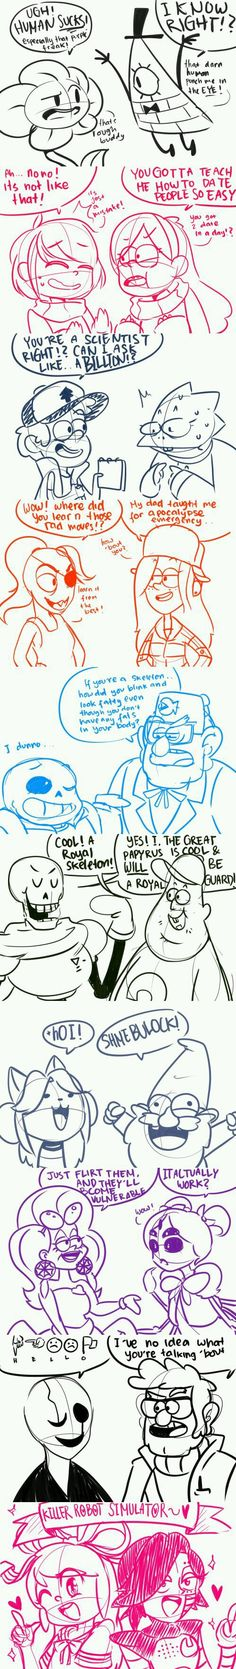 Undertale x Gravity Falls